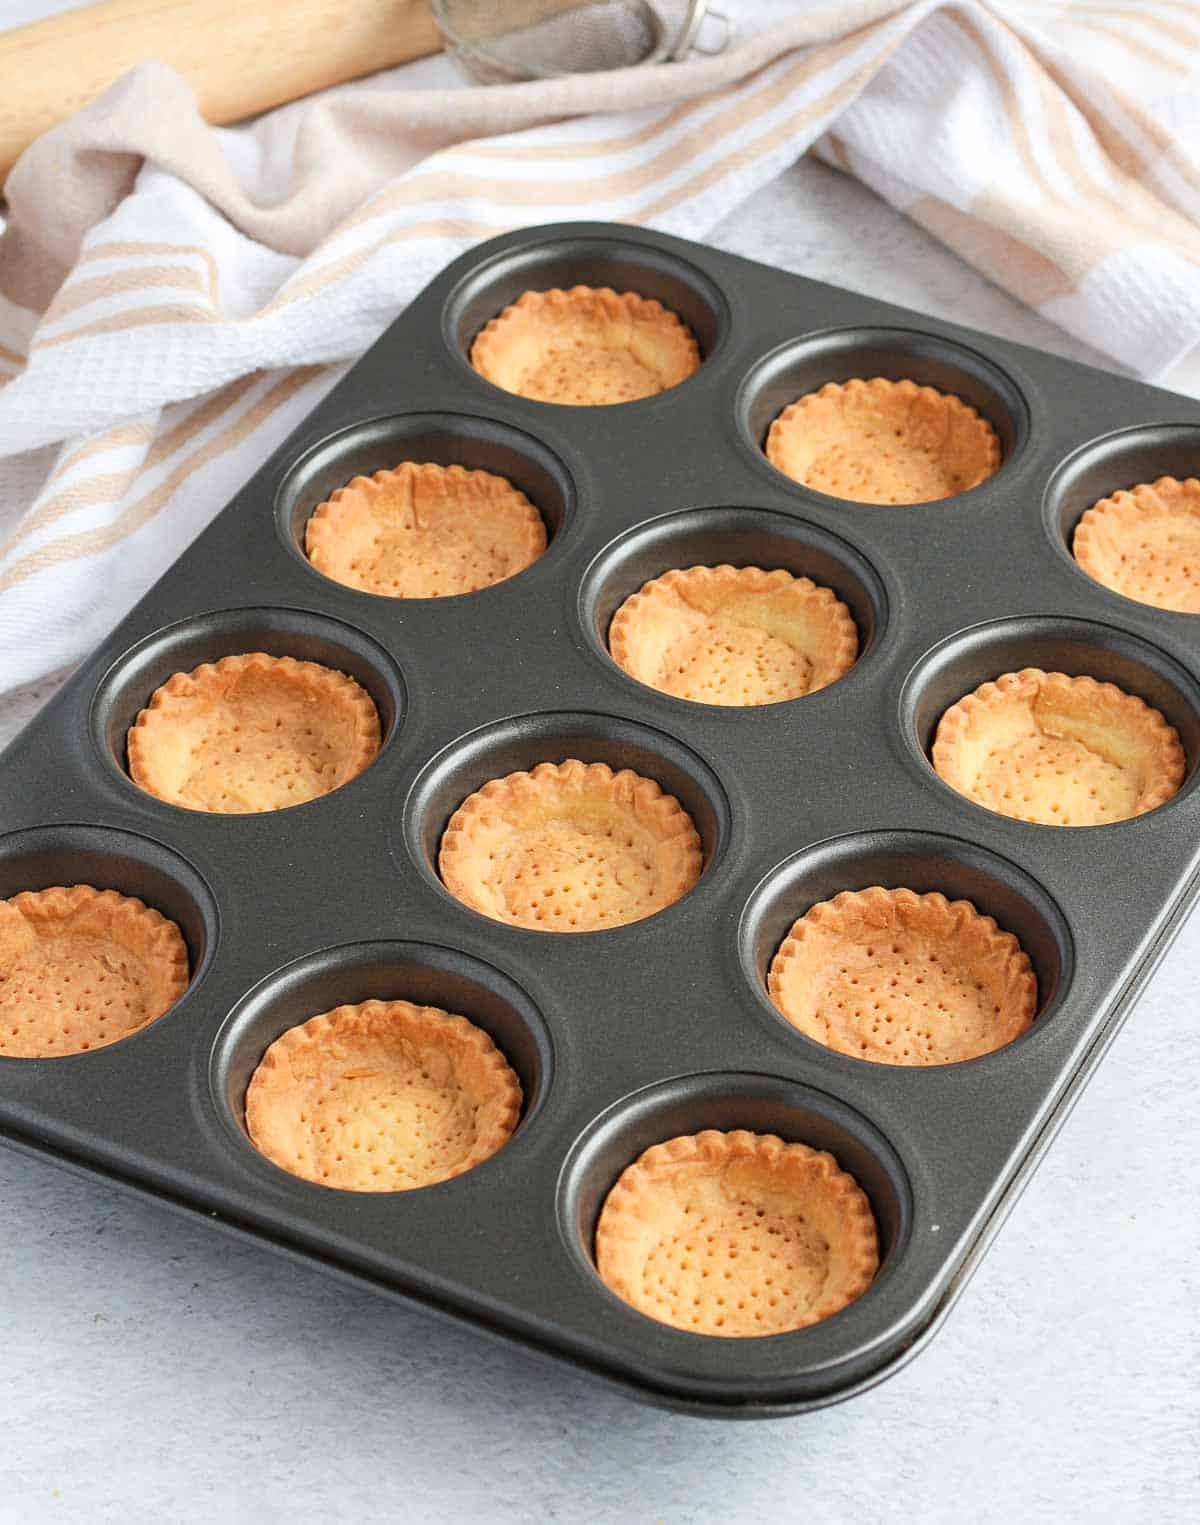 Baked tartlet crusts in the muffin pan.